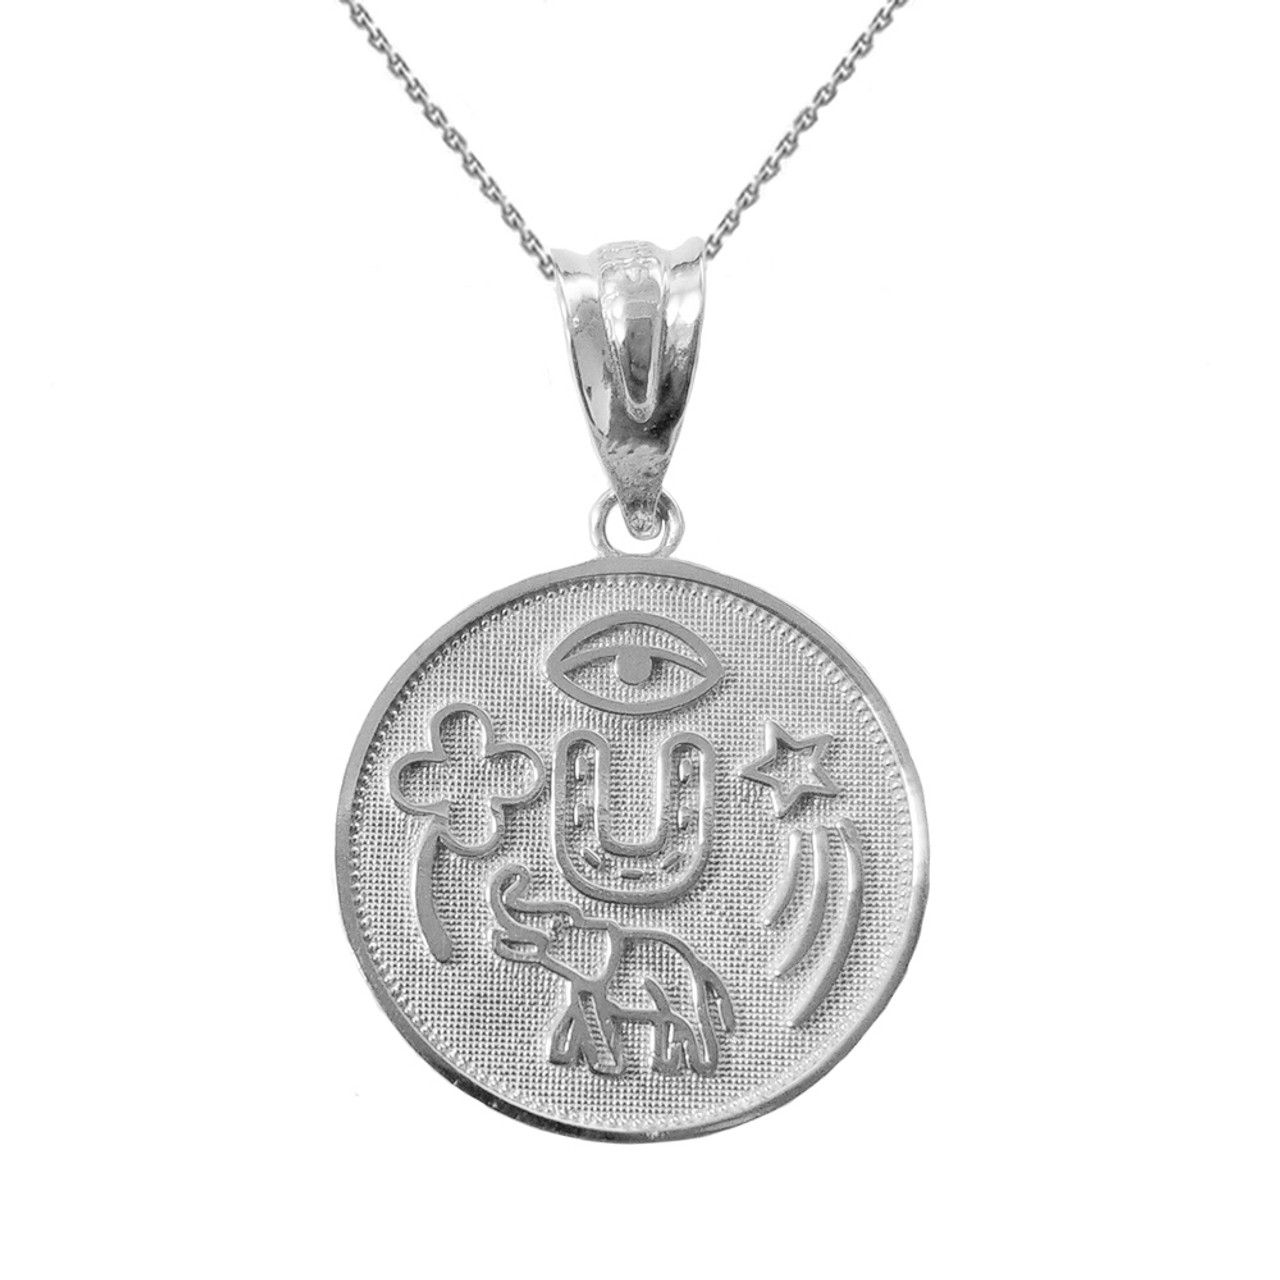 pendant amulets long hamsa gifts good charm luck necklace for lucky